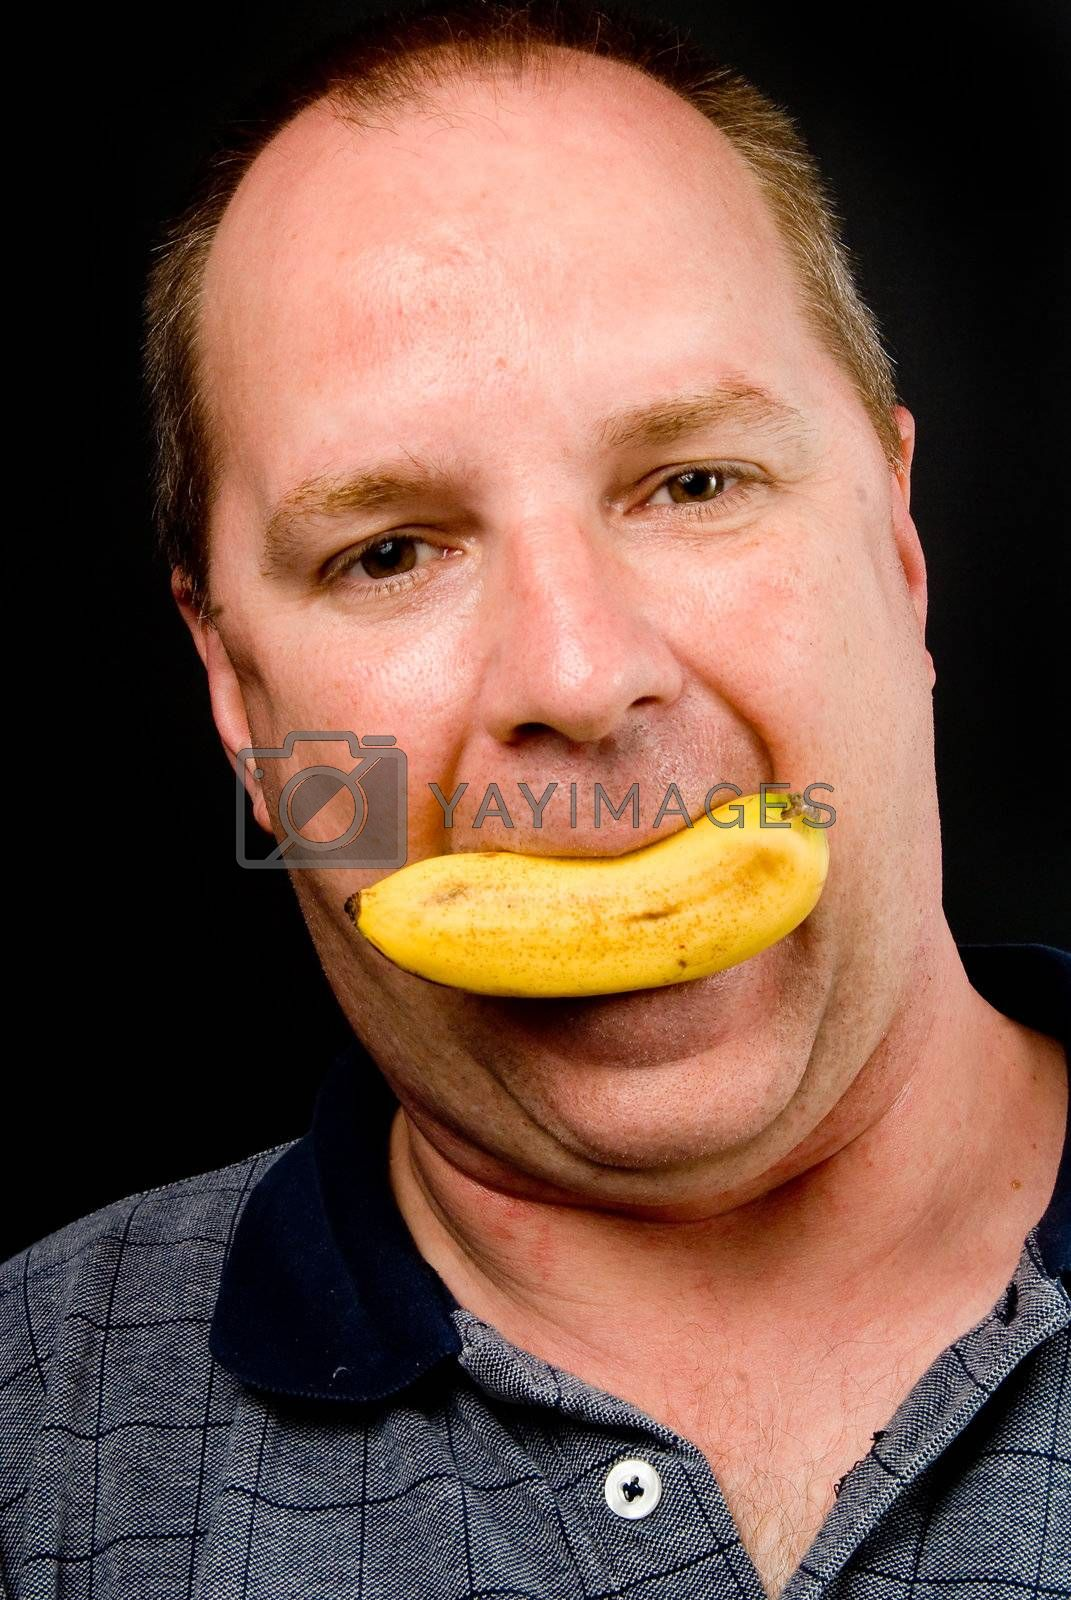 A man smiling with a small banana in his mouth.